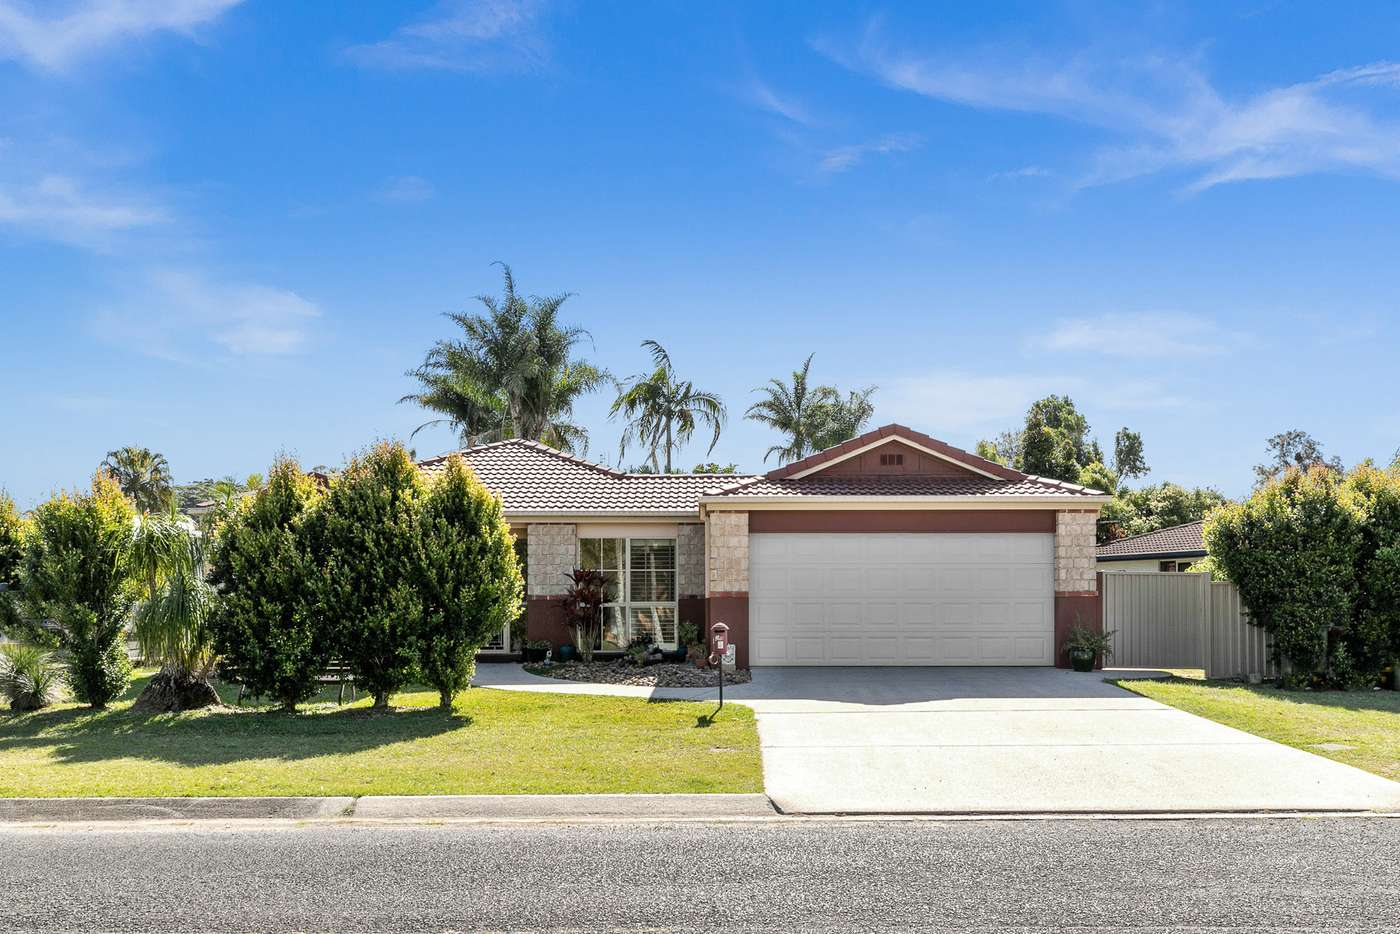 Main view of Homely house listing, 9 Natan Court, Ocean Shores NSW 2483